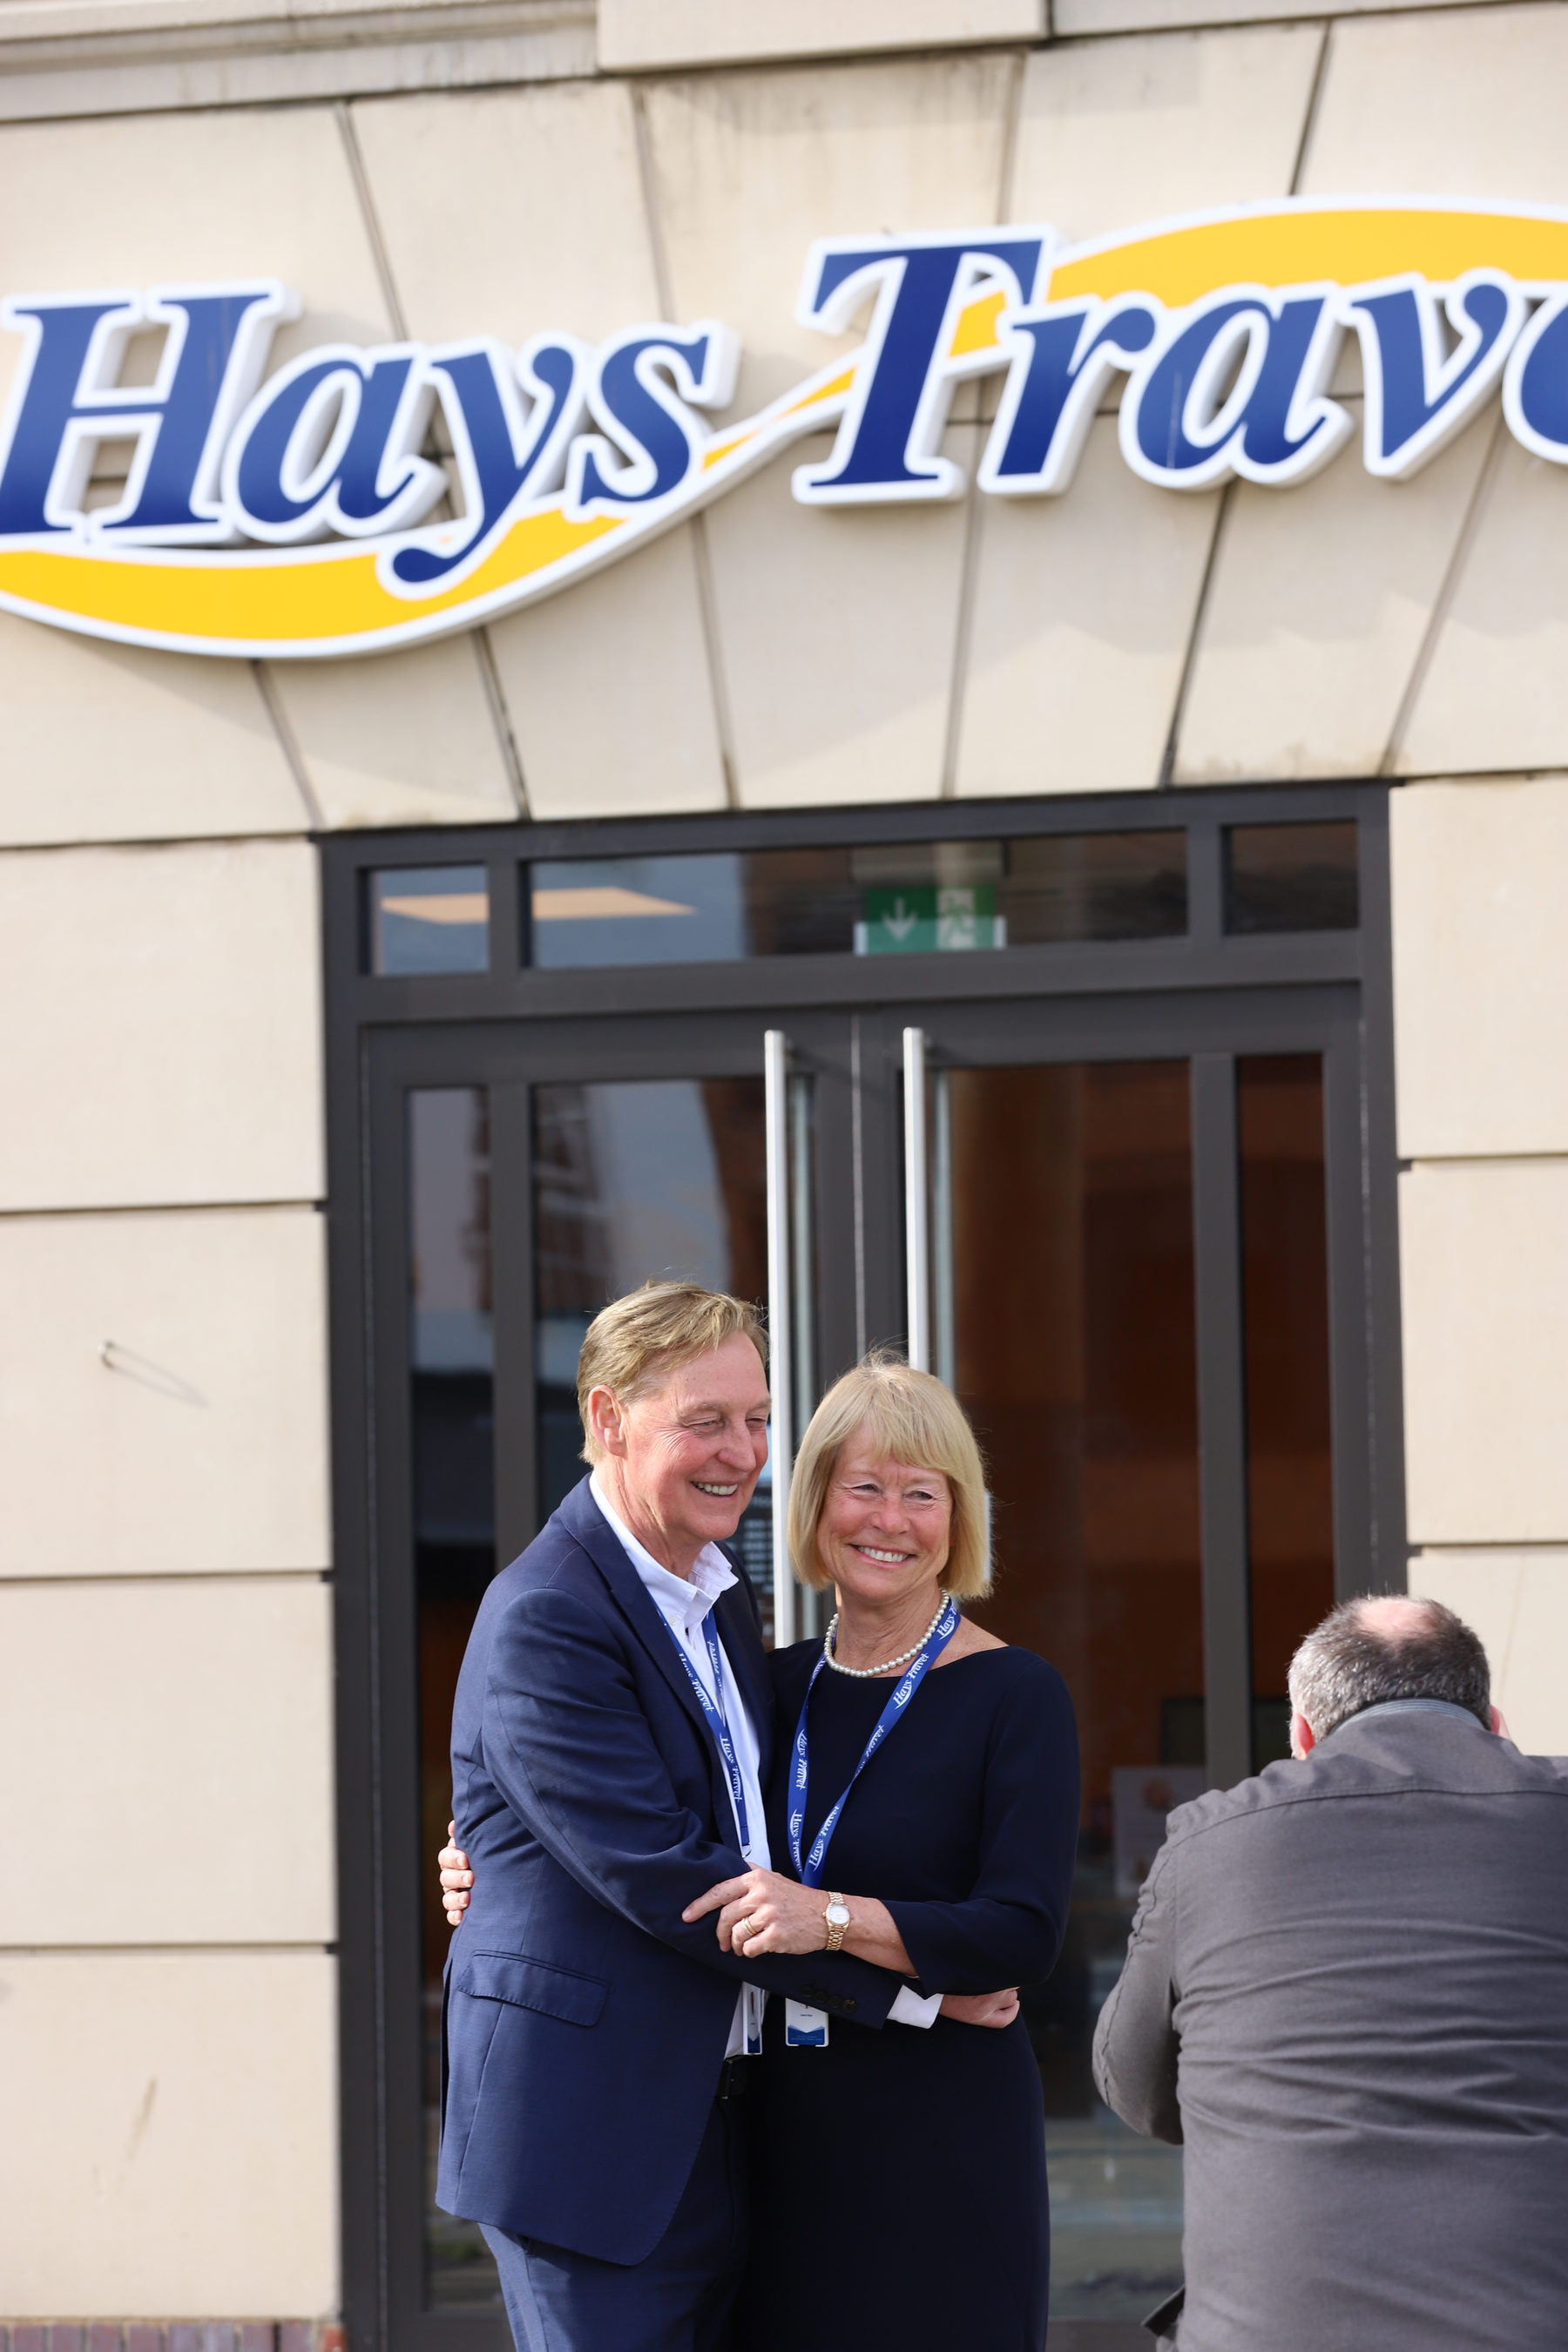 Hays Travel to re-open Thomas Cook high street shops